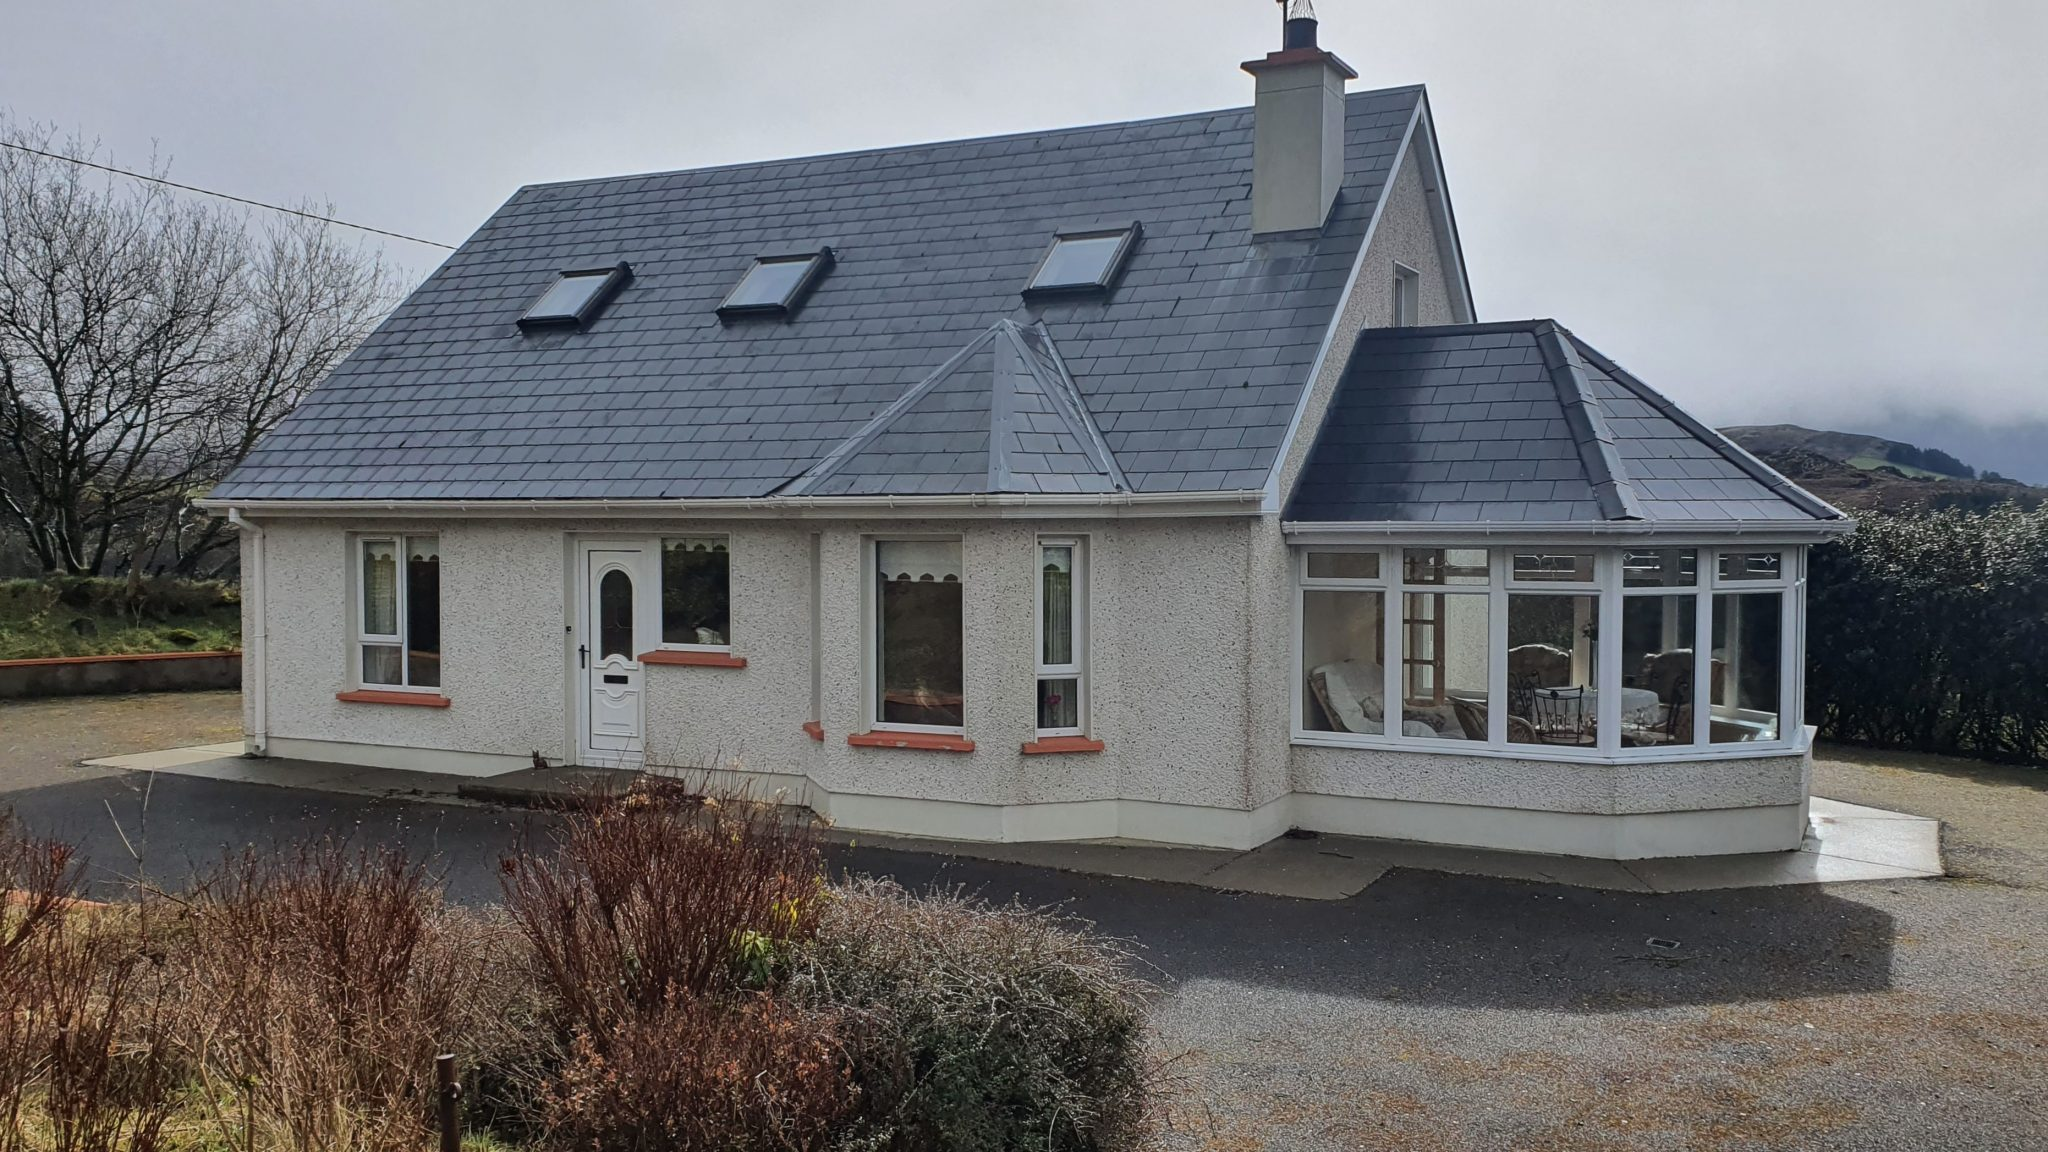 GORTCALLY, KERRYKEEL  – 4 Bedroom Bungalow – Offers from €130,000.00